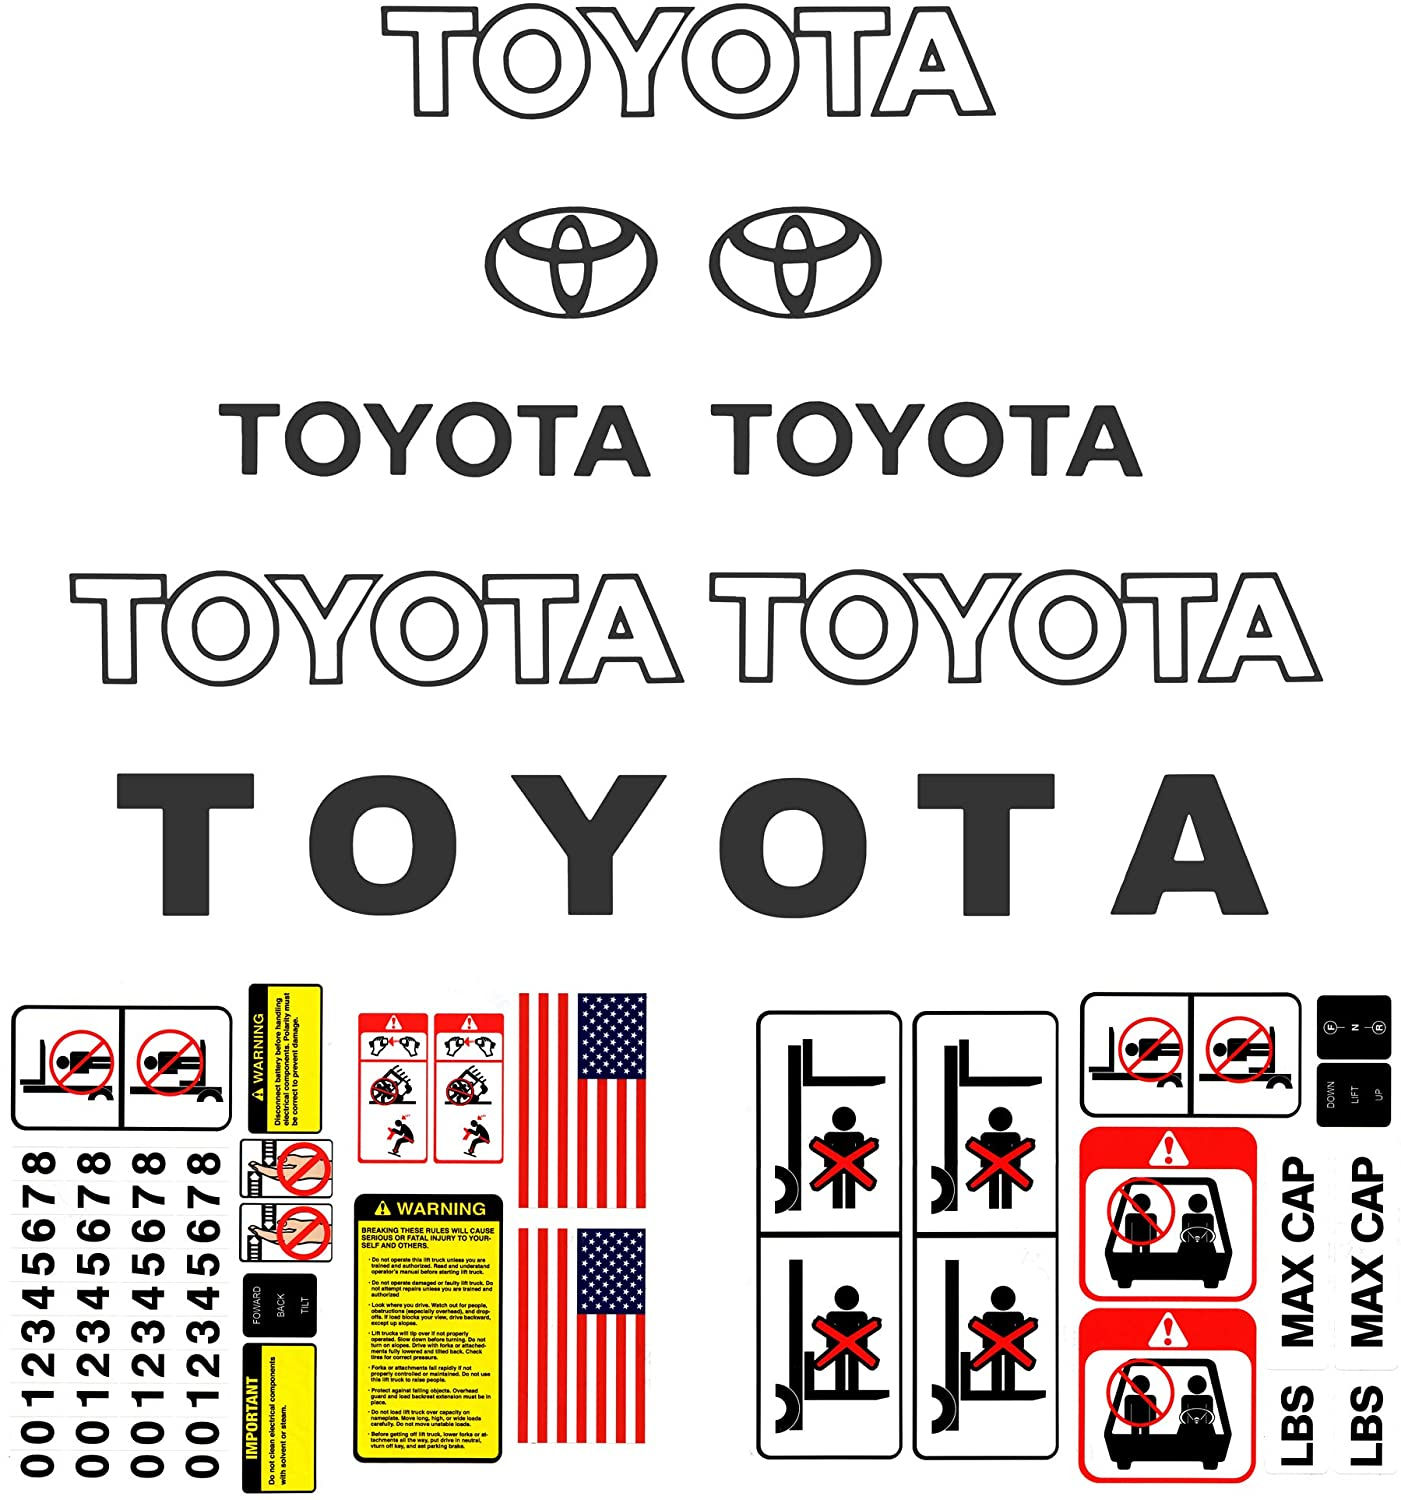 Bill's Lift Forklift Decal Kit for Toyota Industrial Lift Trucks and Equipment, Detailed w/Safety Decal Stickers for 7 & 8 Series - Dark Grey